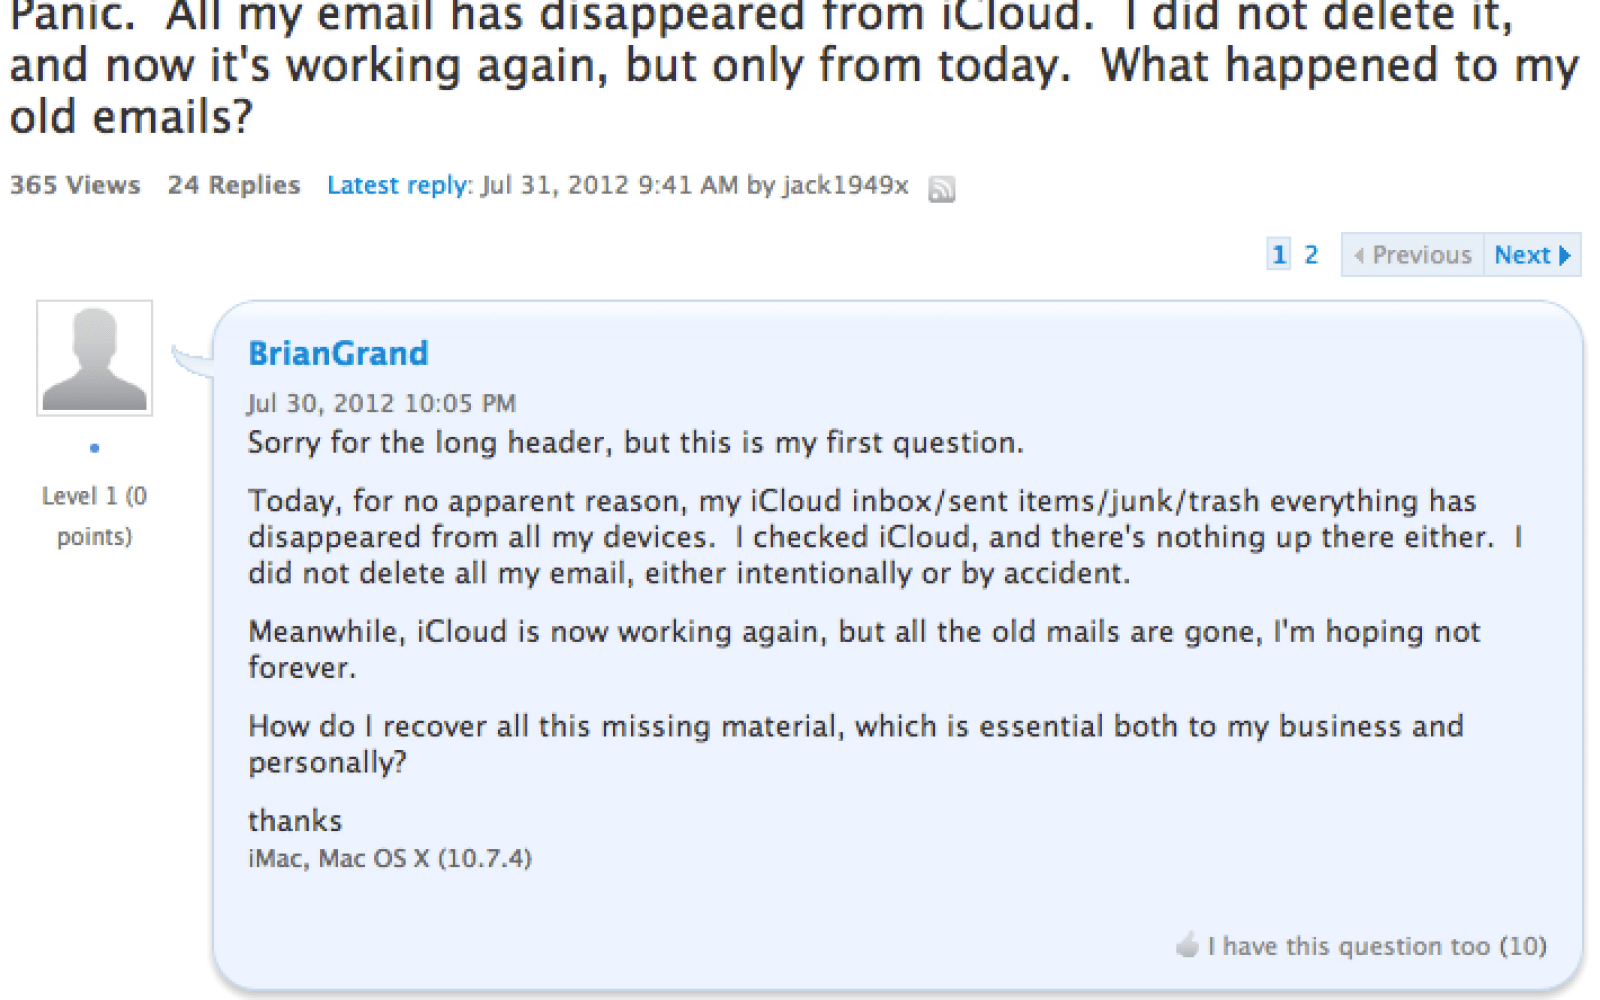 icloud mail not working today